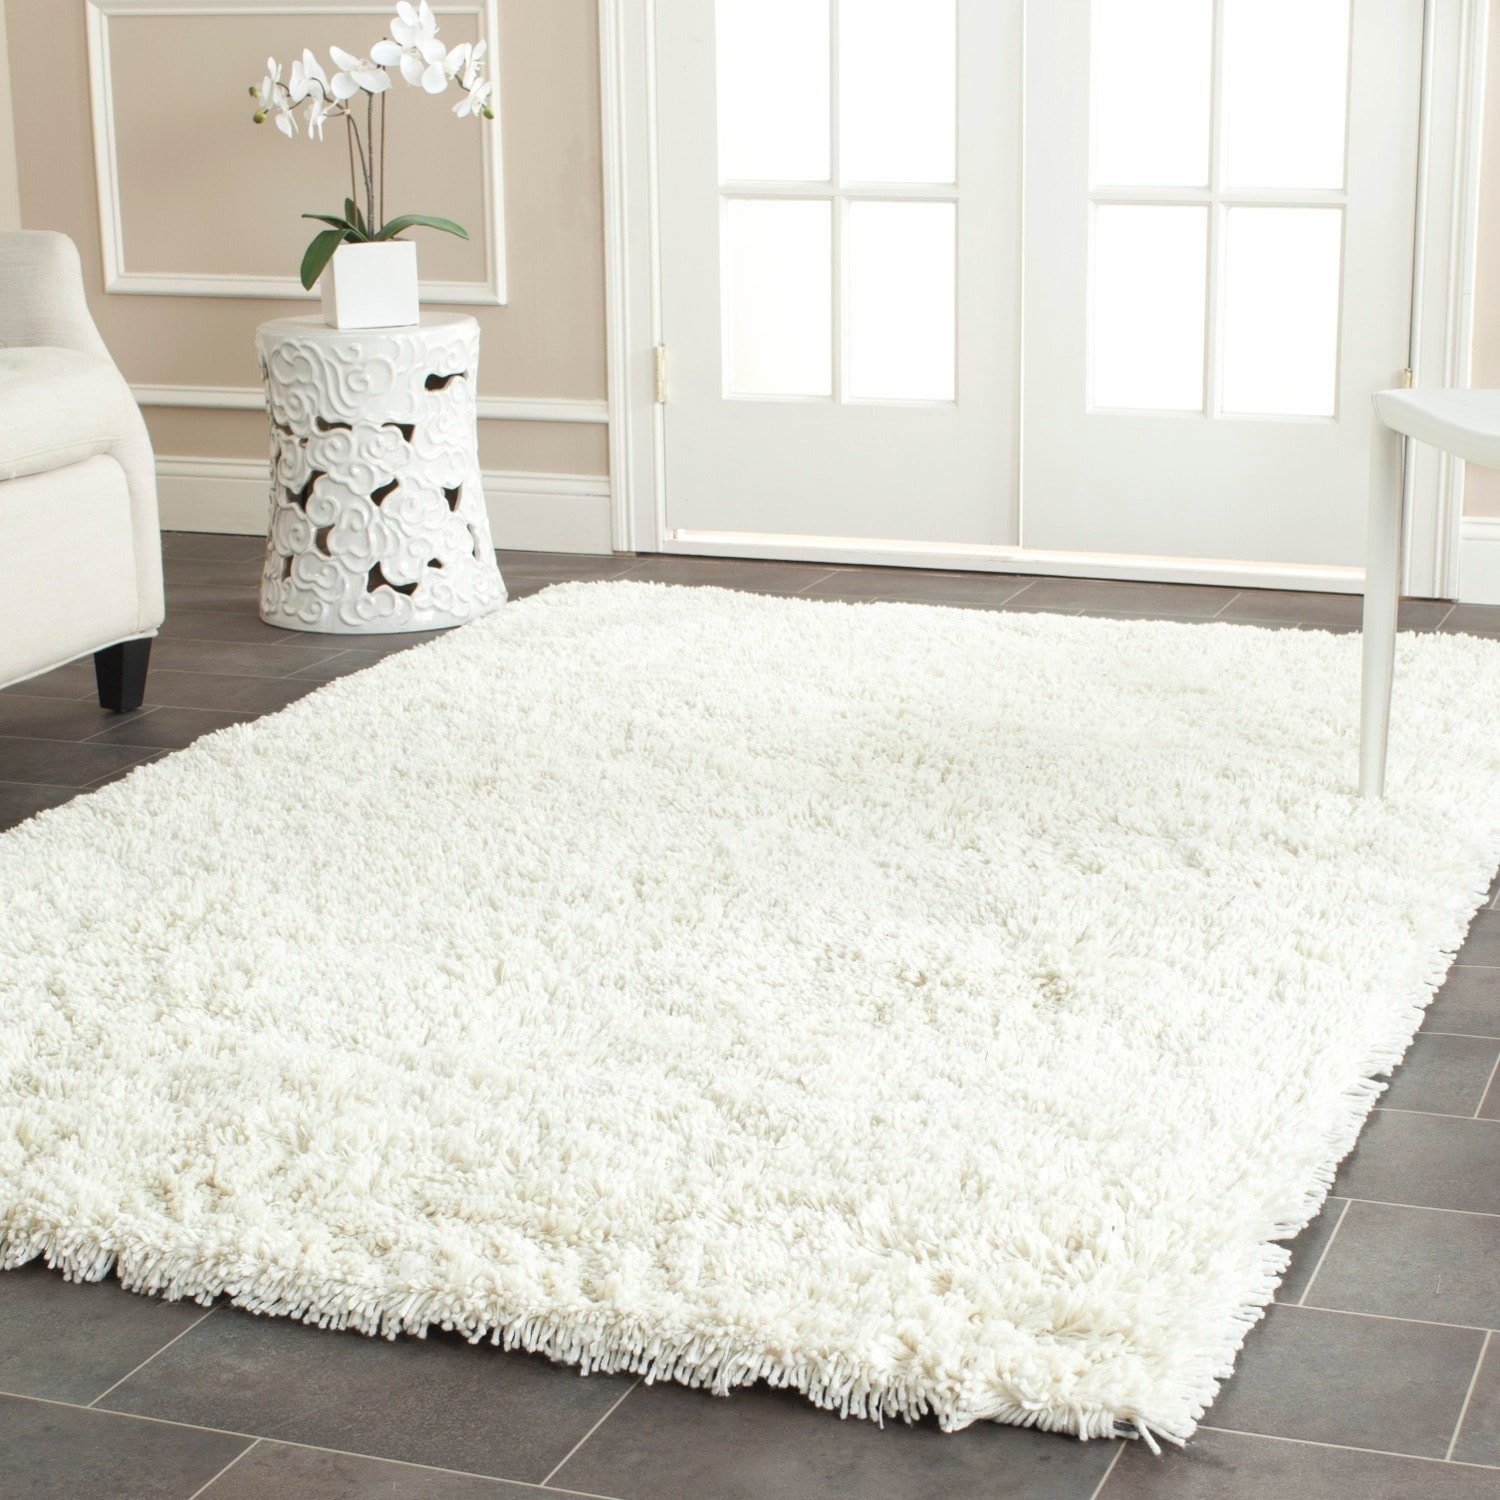 Safavieh Classic Shag Collection SG240V Handmade Ivory Area Rug (6' x 9') by Safavieh